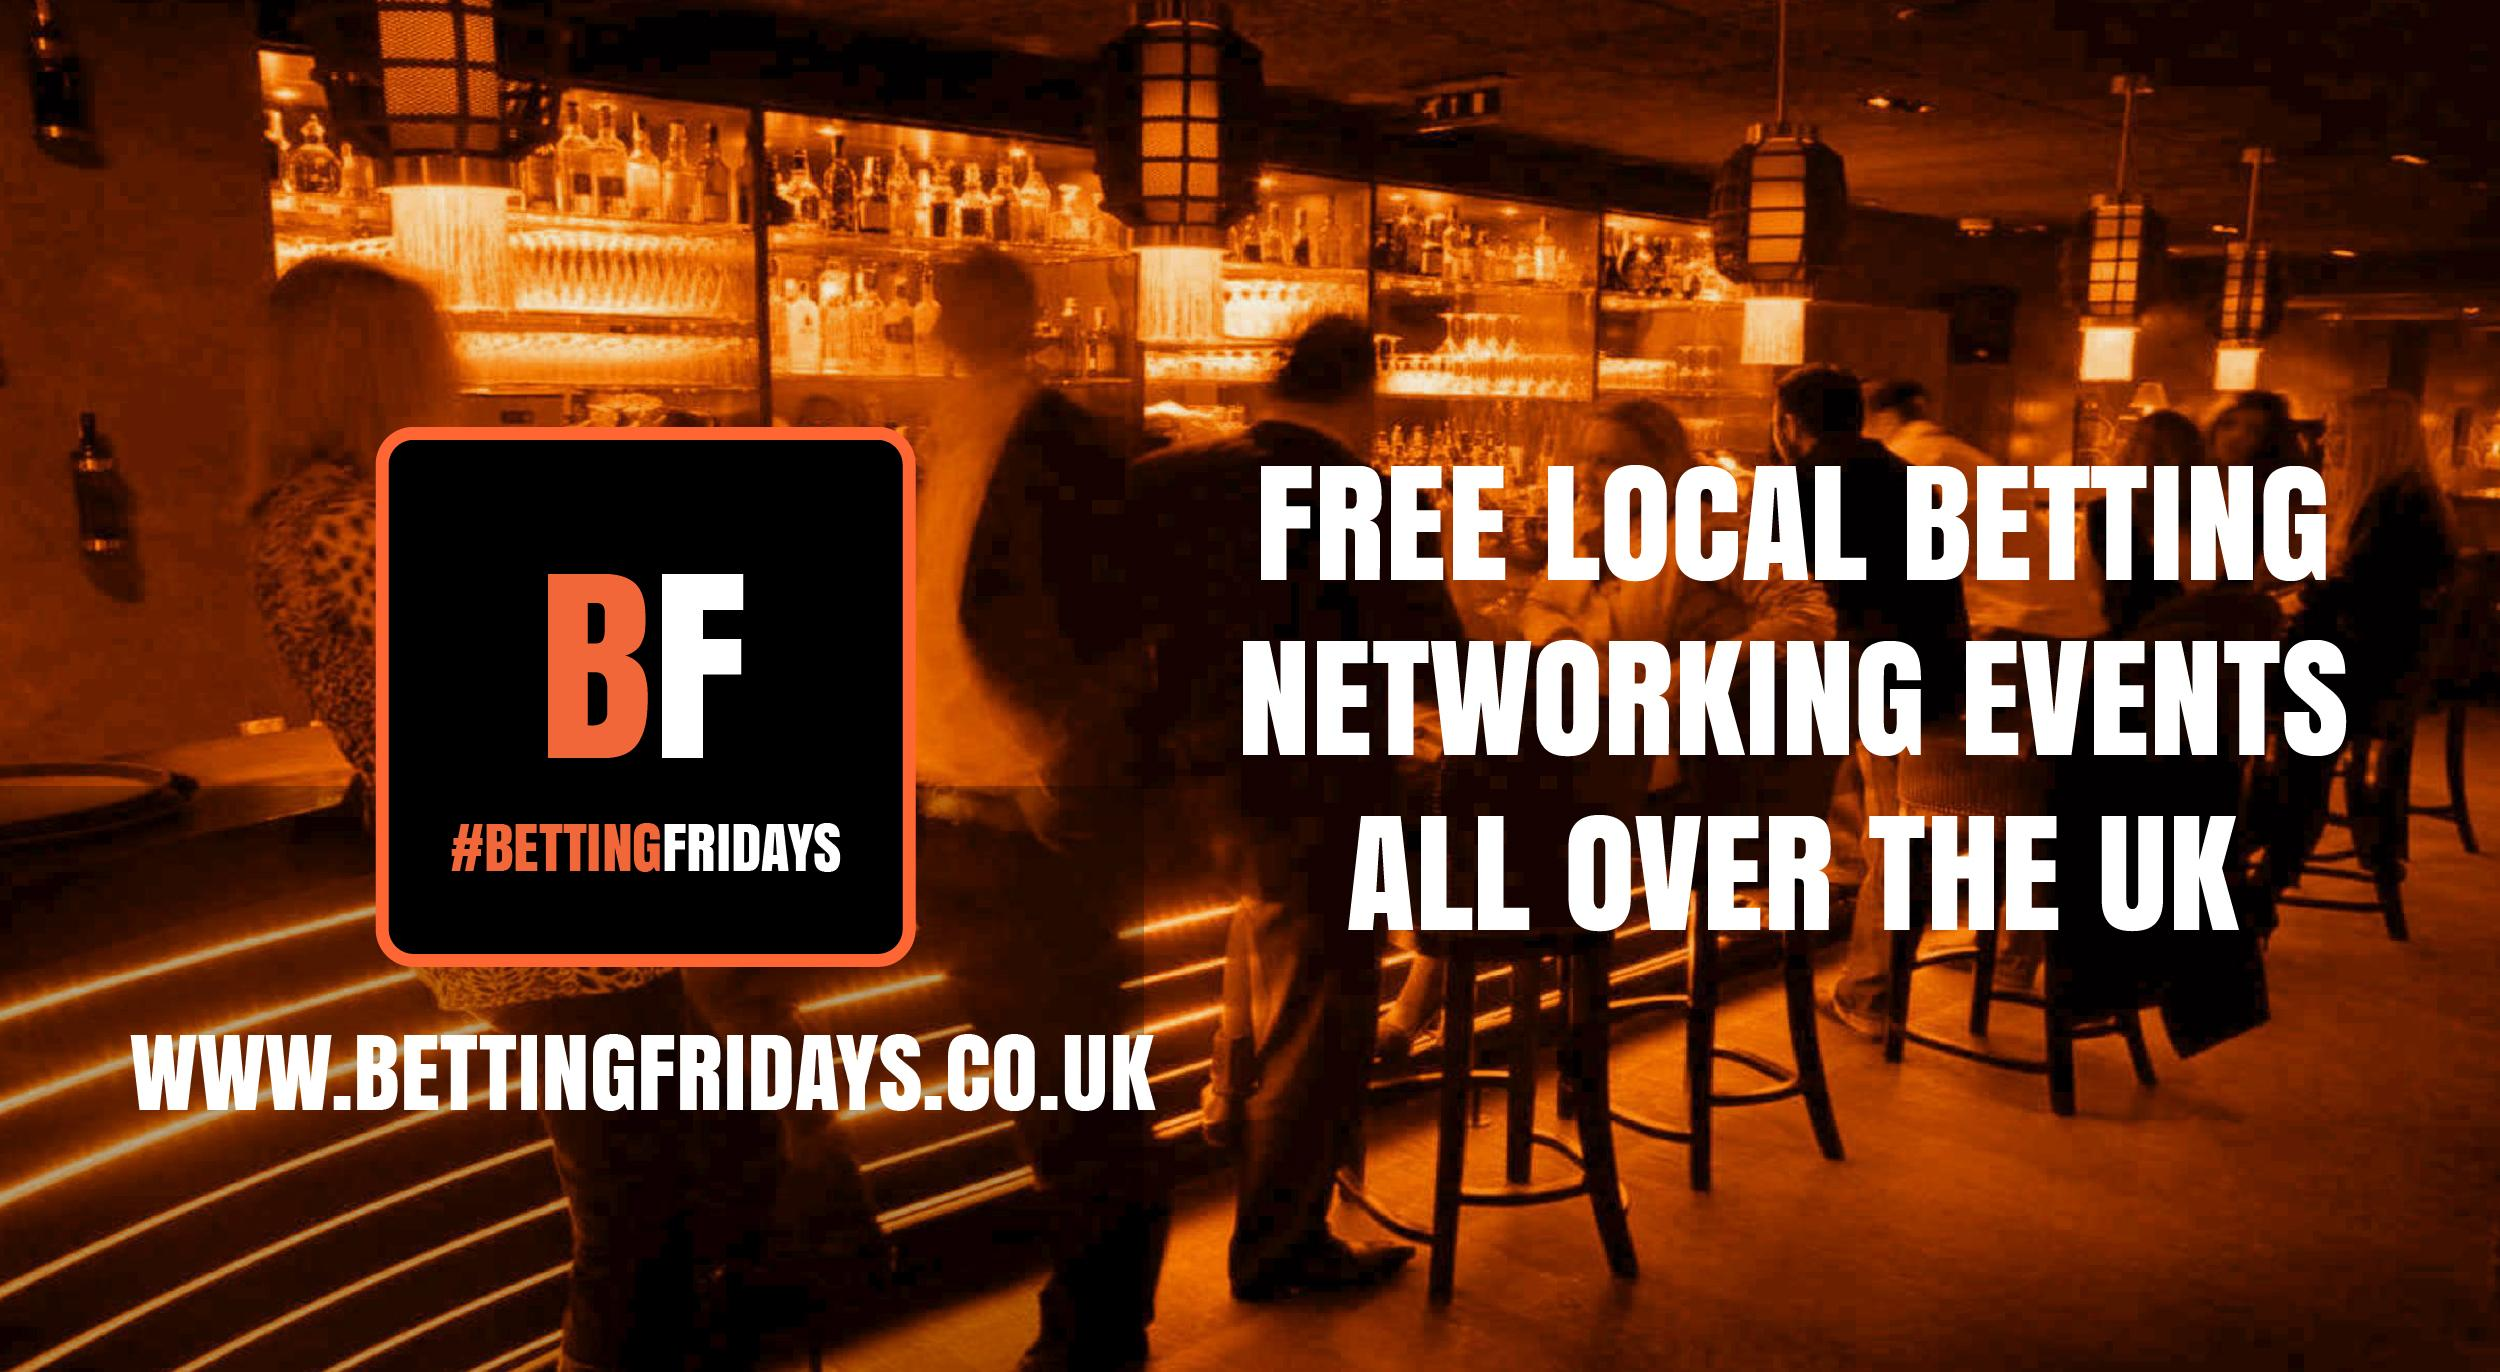 Betting Fridays! Free betting networking event in Manchester